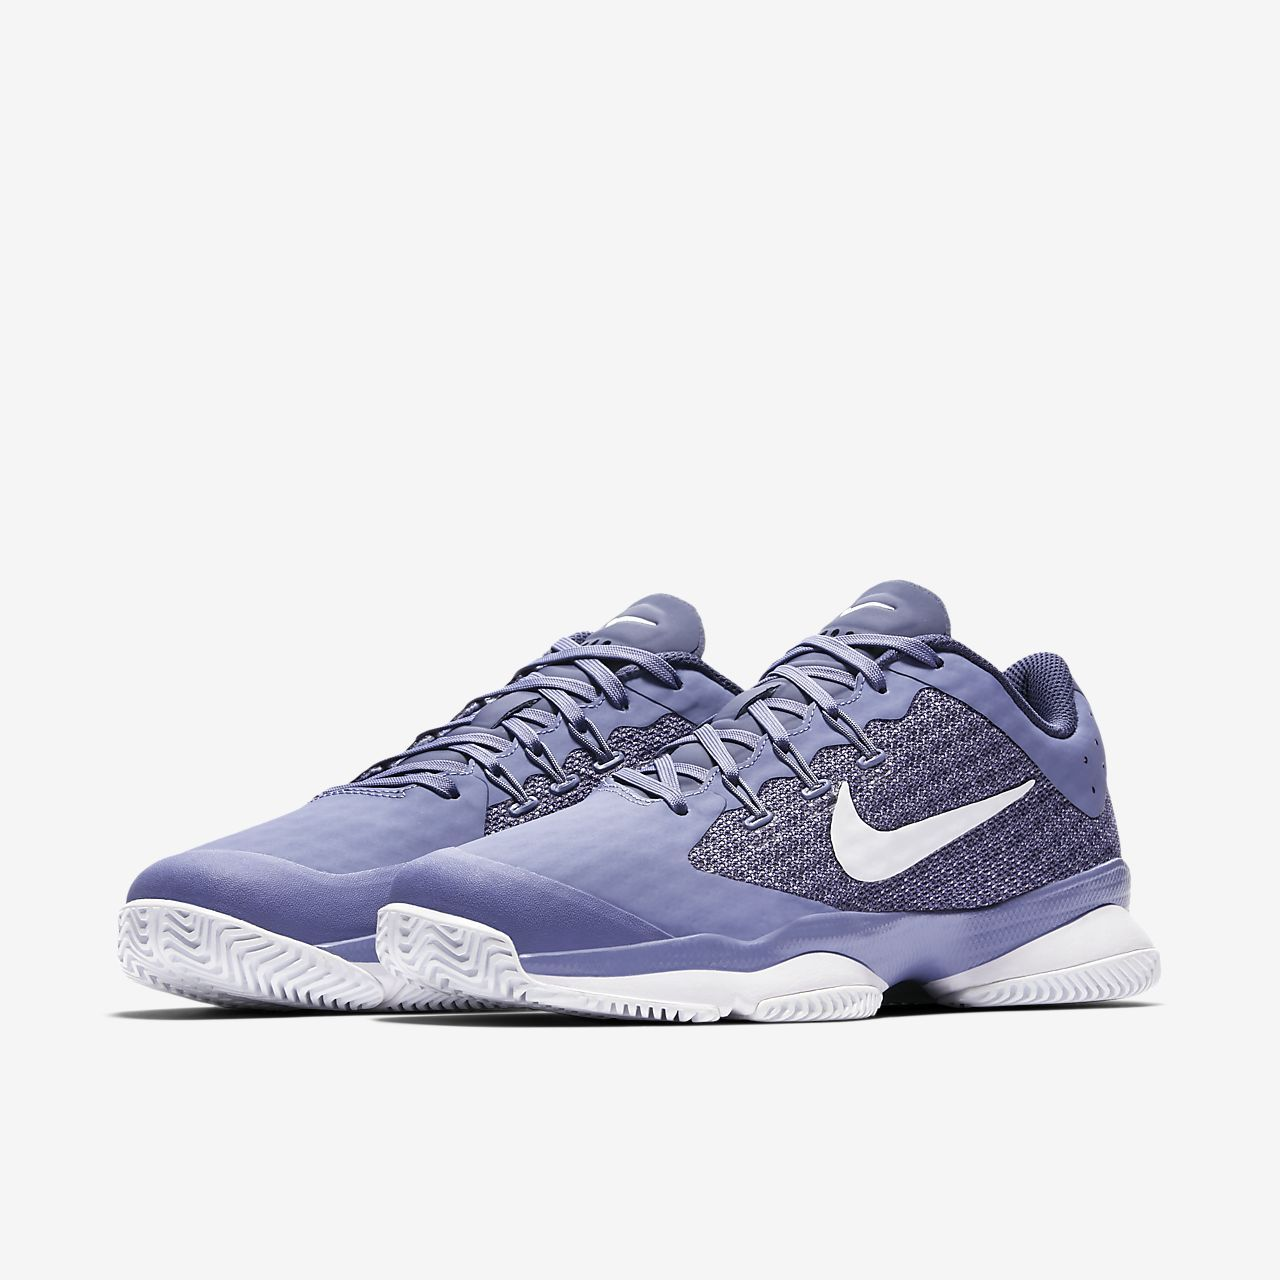 new Chaussures 046a7 cfdd7 nikecourt air zoom ultra